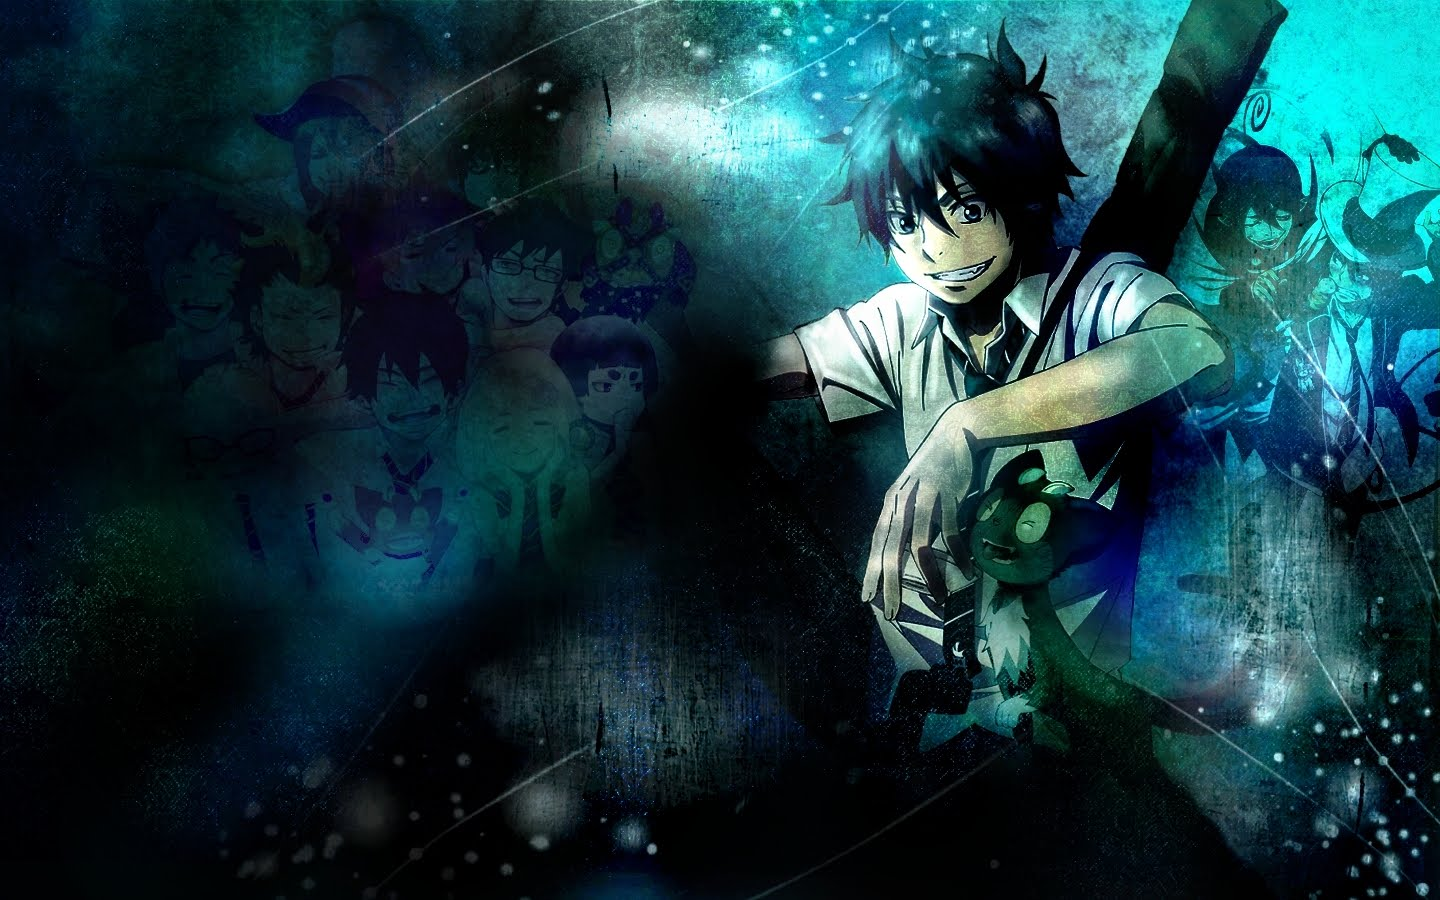 wallpaperanimalcat: ao no exorcist wallpaper | wallpaperanimalcat